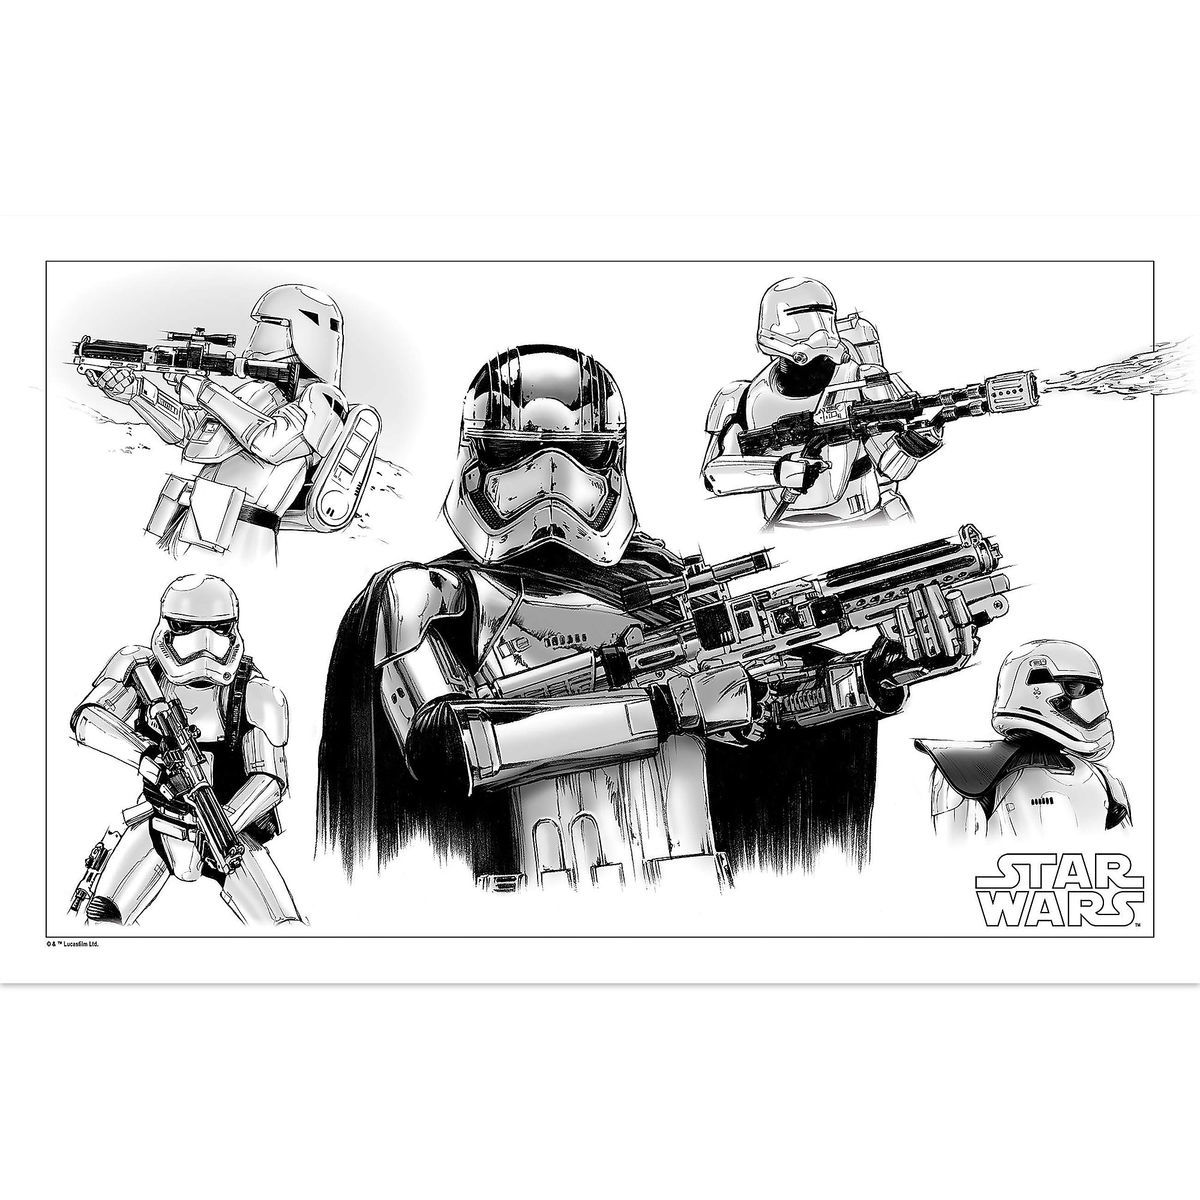 Star Wars Stormtrooper Sketch Tin Wall Decor | shopDisney